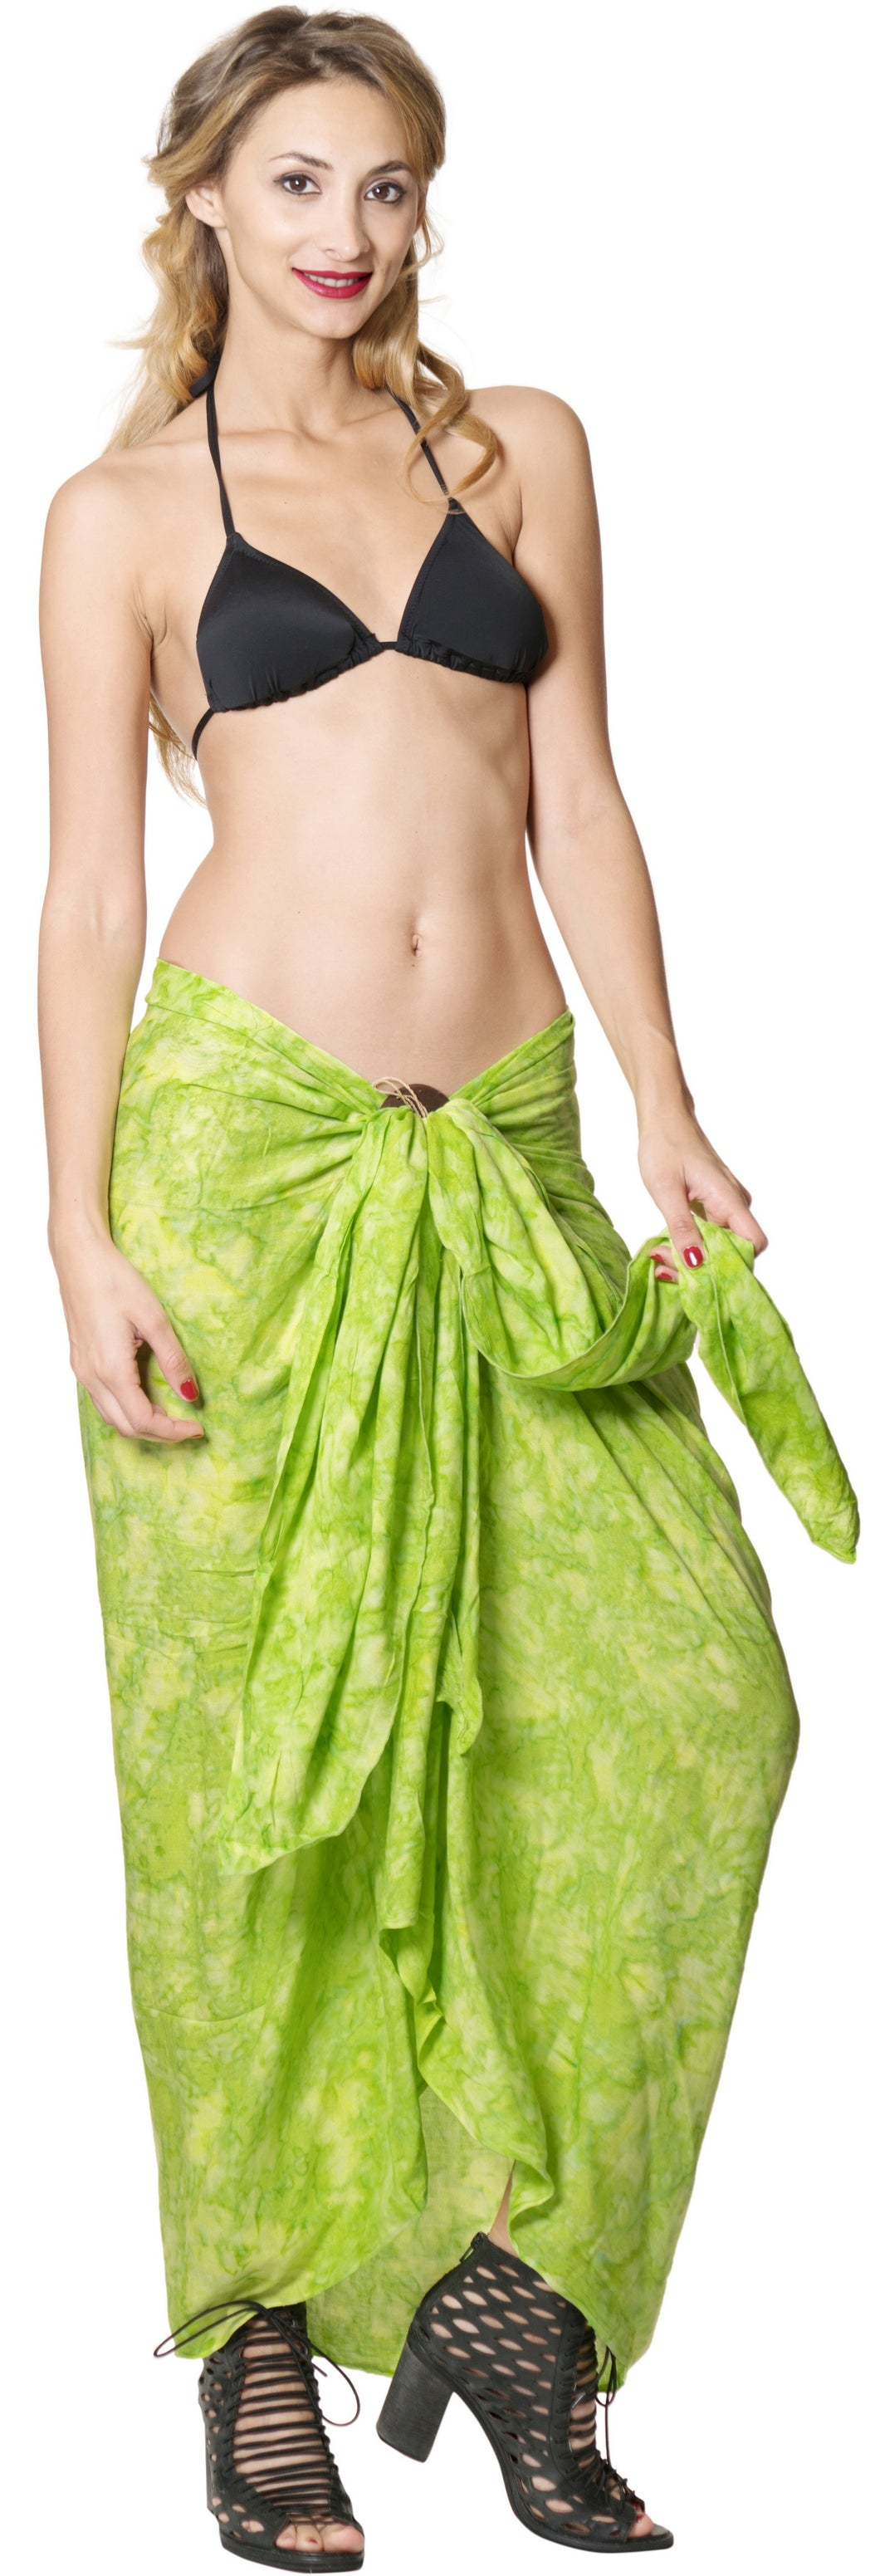 la-leela-swimwear-rayon-hawaiian-beach-dress-swimsuit-sarong-tie-dye-78x43-parrot-green_4460